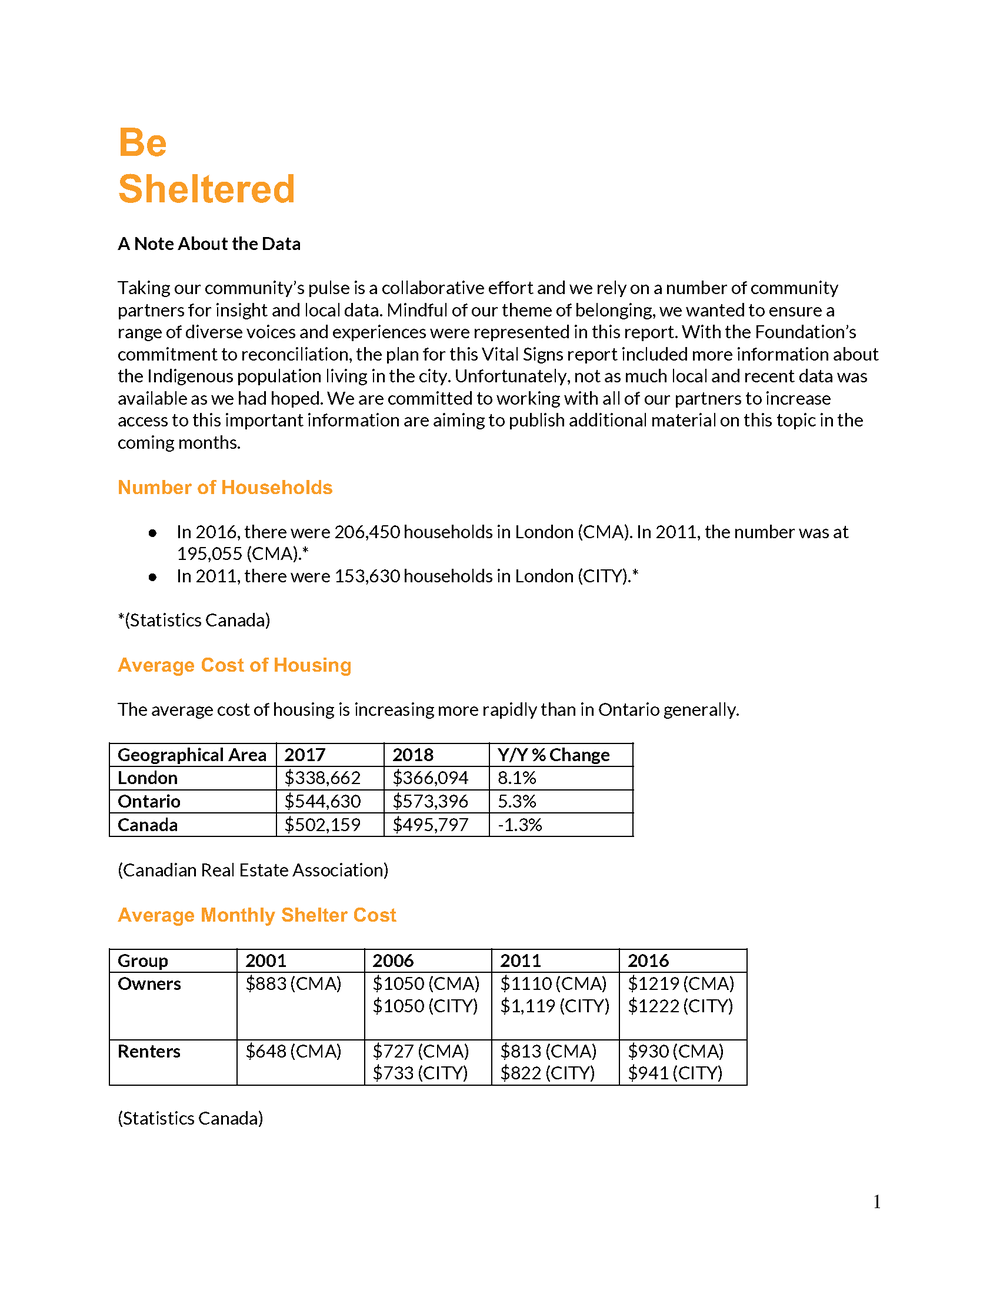 LCF-Vital Signs-Be Sheltered_2.png